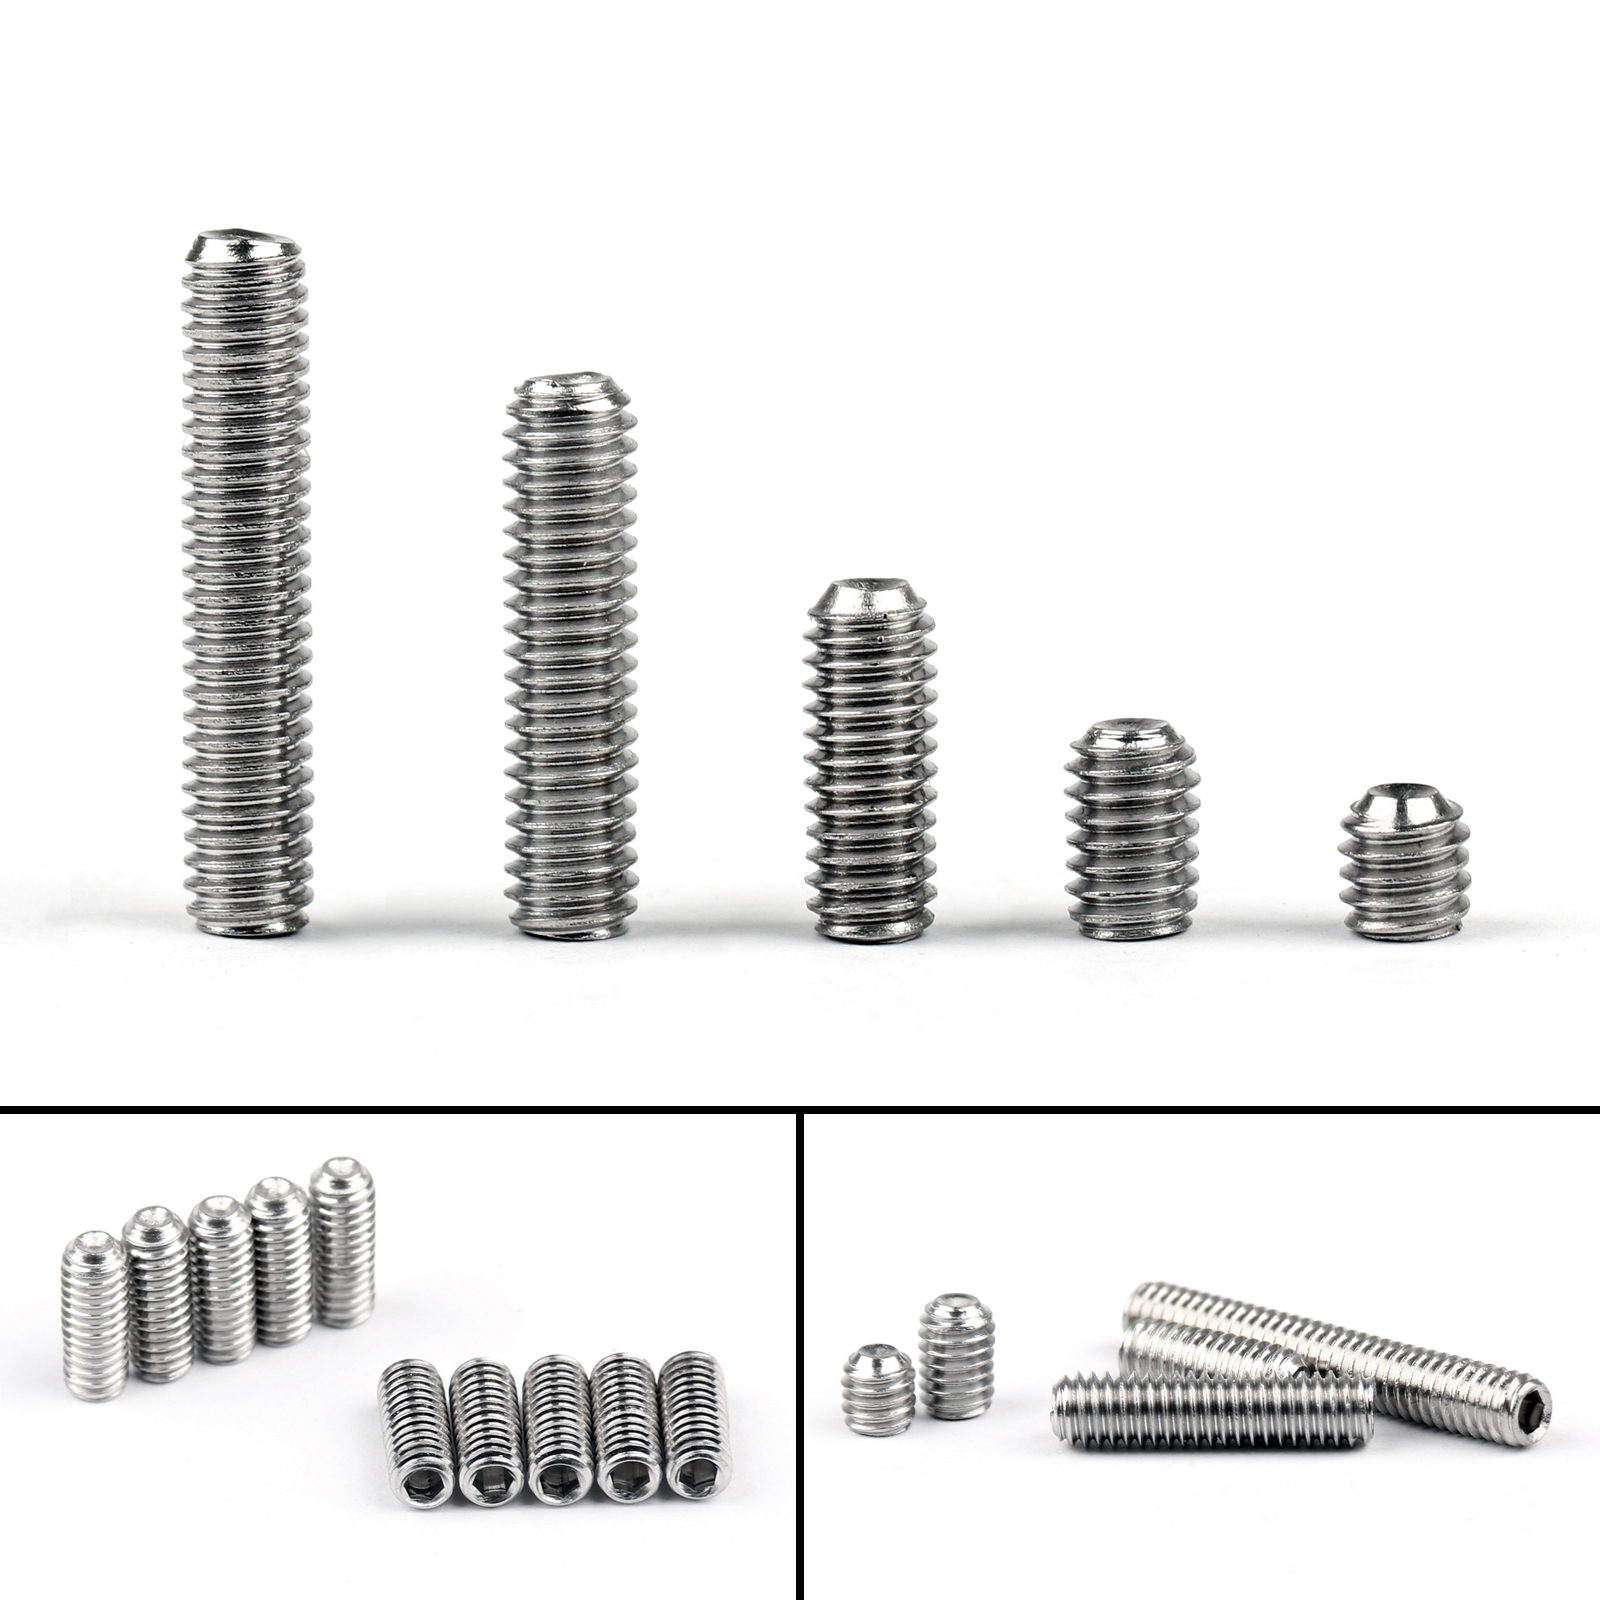 M2 304 Stainless Steel Hex Socket Set Screws With Cup